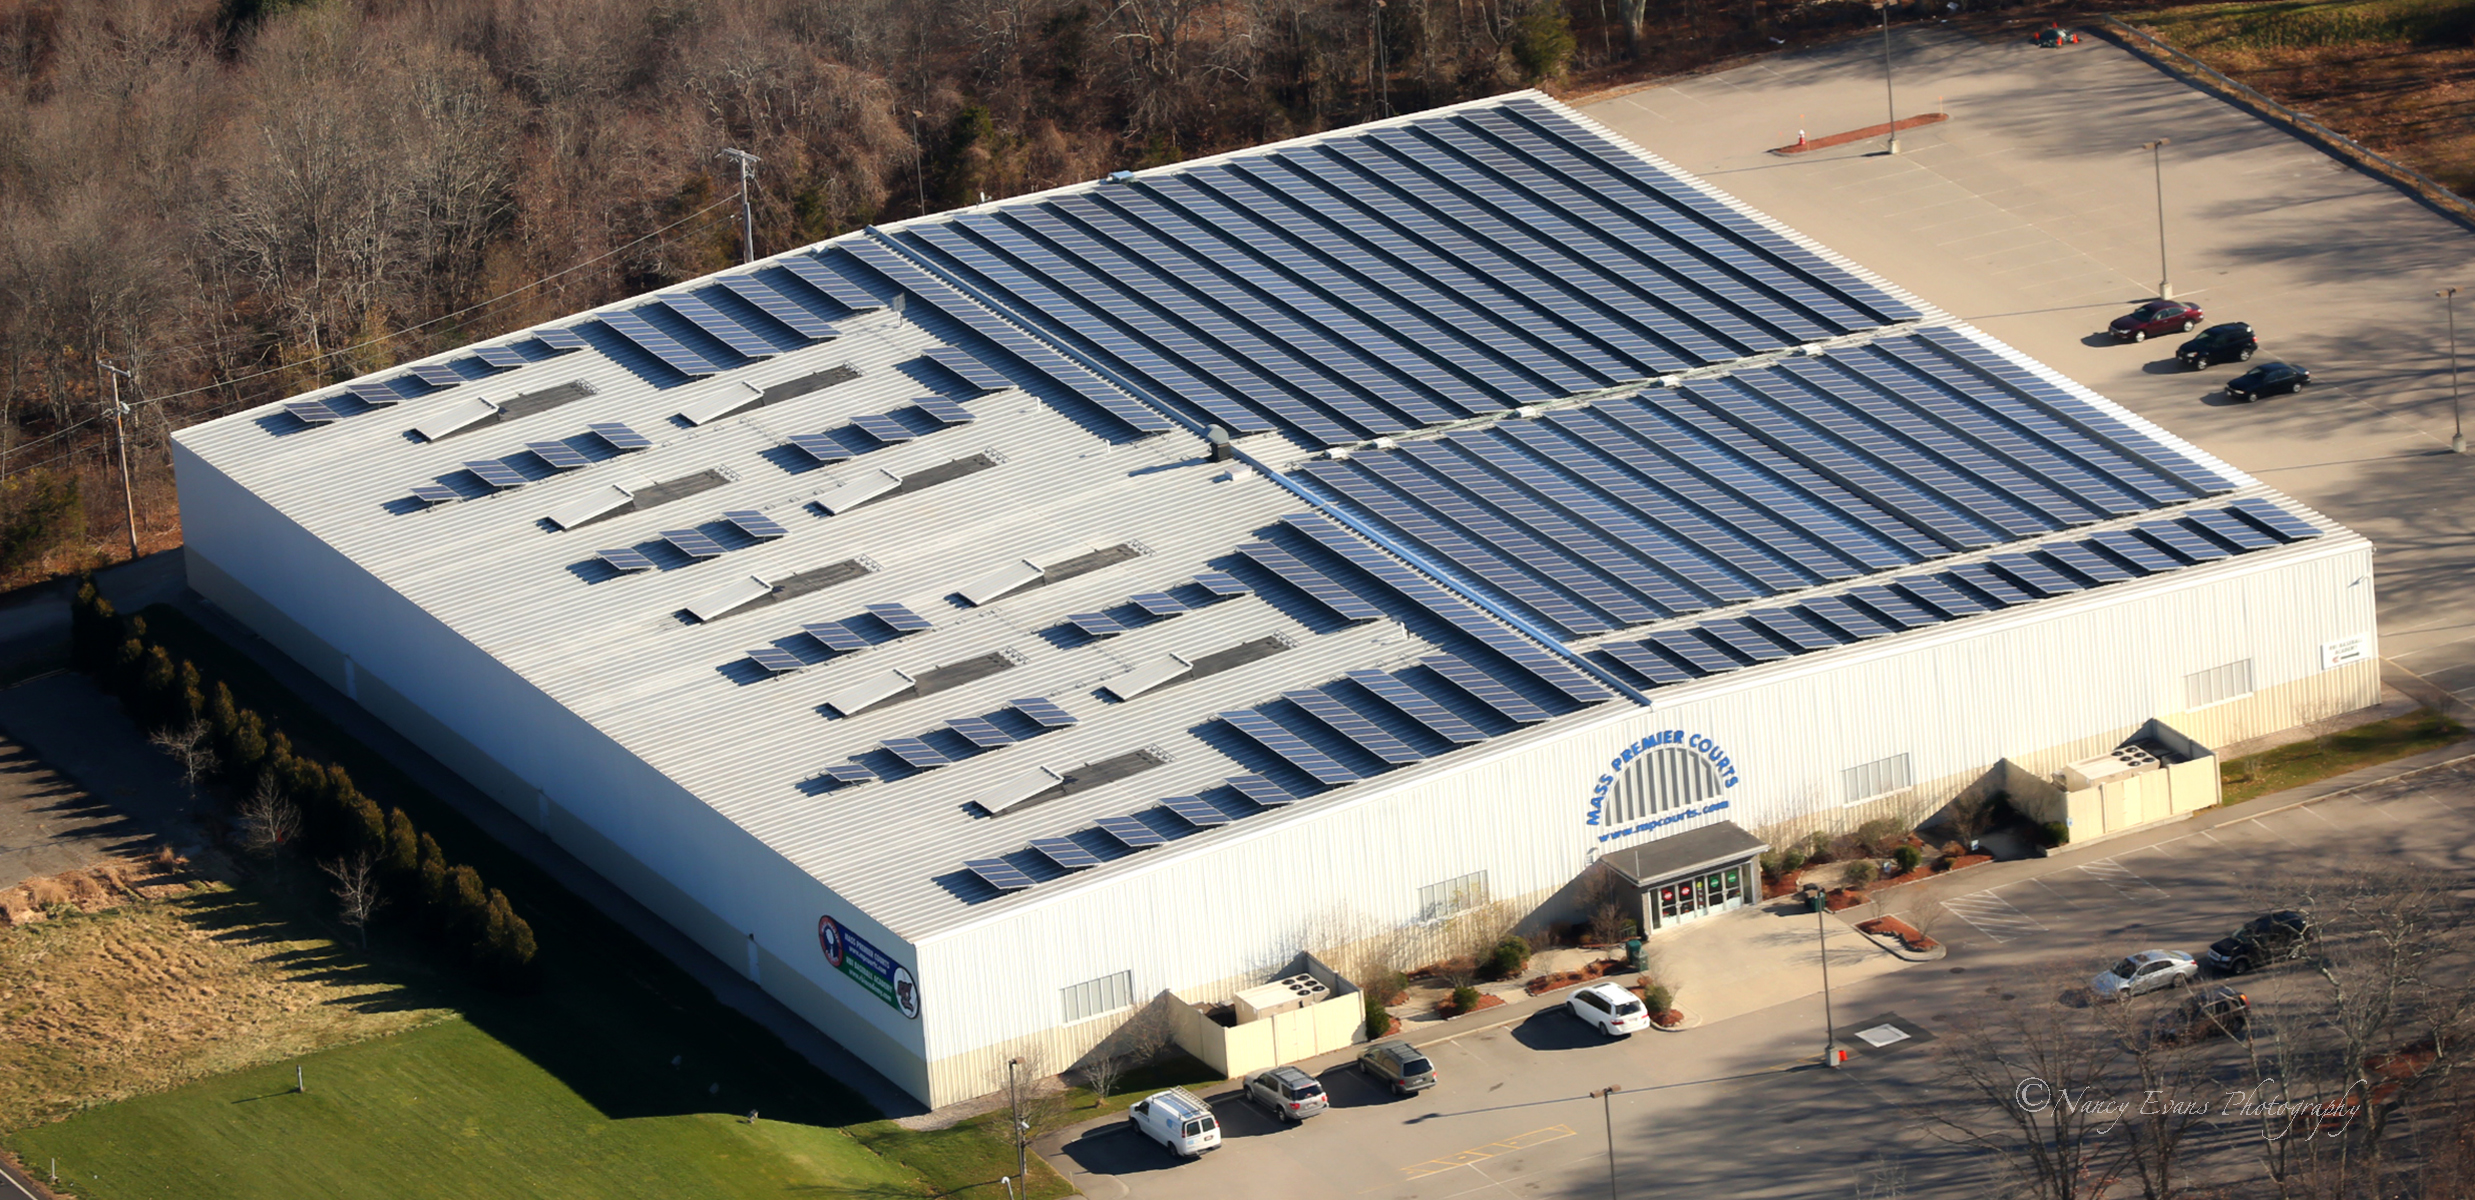 Beaumont Solar designed Mass Premier's 389.40kW system specifically to avoid any costly upgrades to the utility grid